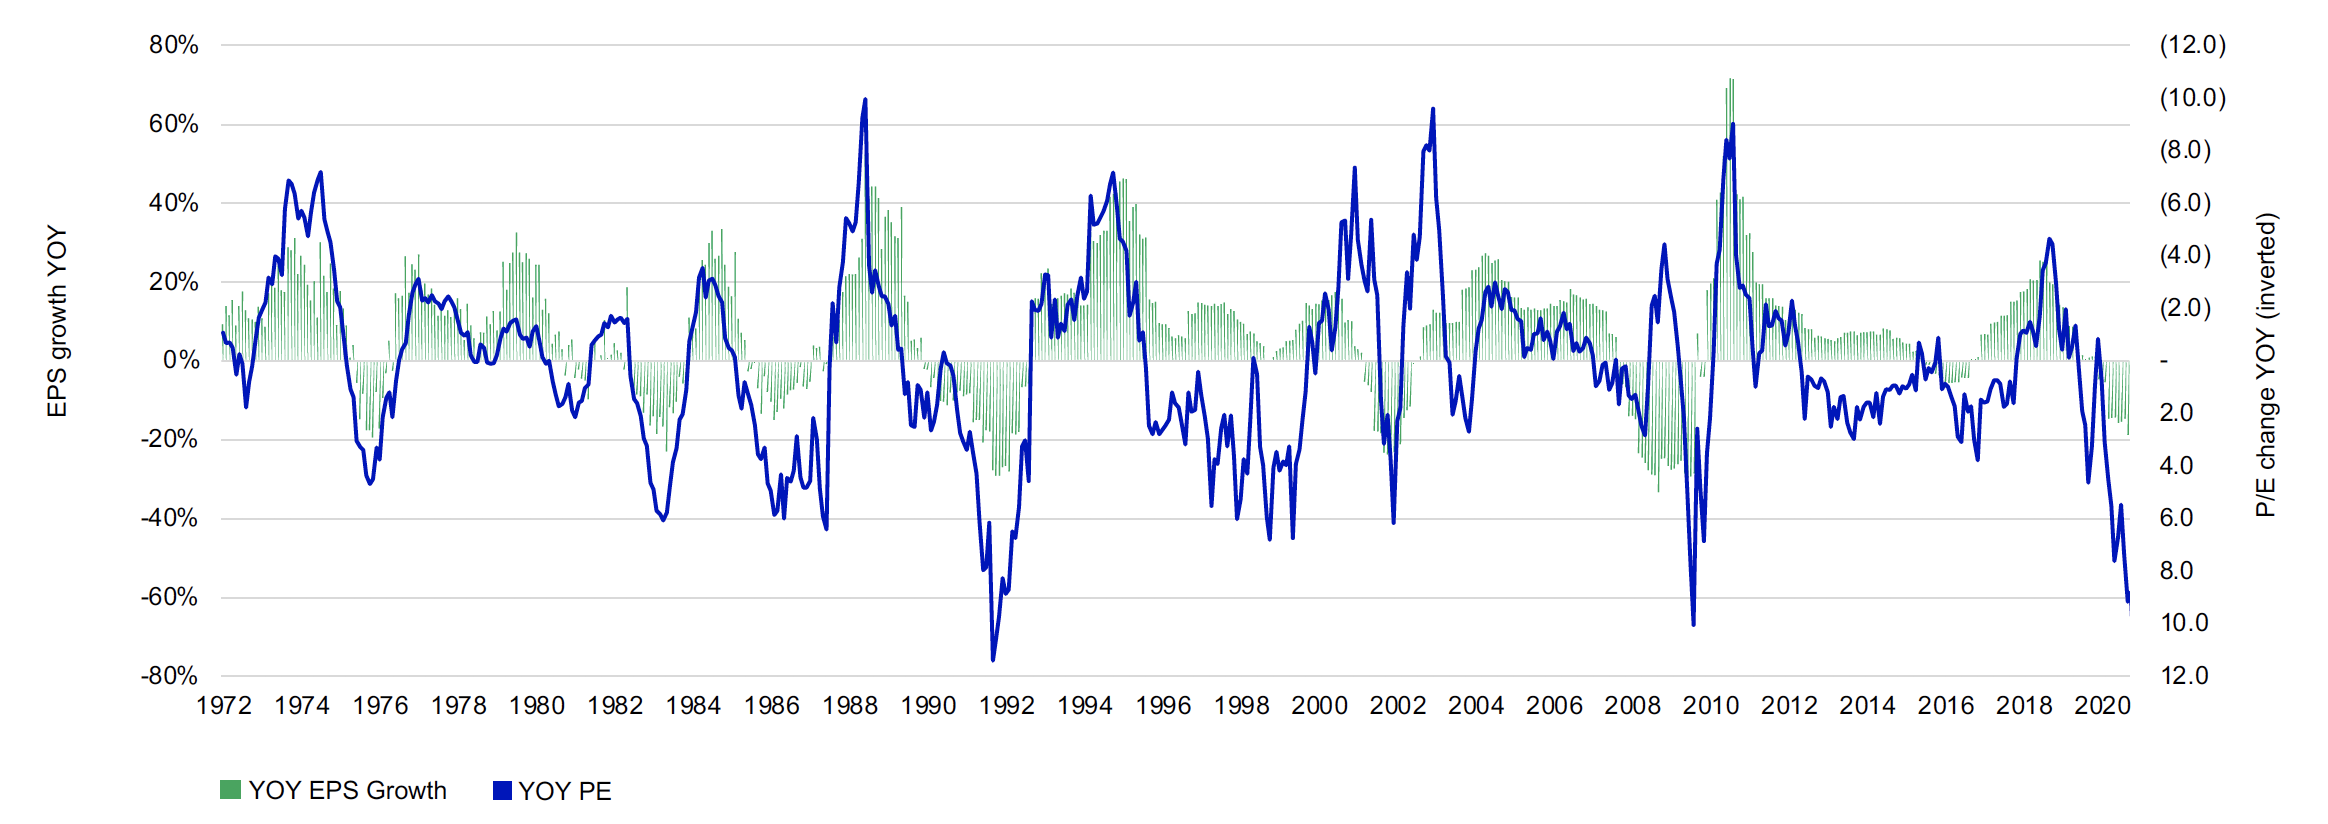 This chart shows year over year earnings growth compared to the year over year change in Price to earnings ratio of the S&P 500 from January 1972 to March 31, 2021. These two data sets have an inverse correlation so they move in opposite directions to the upside and downside over time. The axis for the change in price earnings ratio is inverted so the image shows how closely they follow each other. Recently the price to earnings ratio is quite high but since the axis is invers the line is low. The earnings growth line is also low.